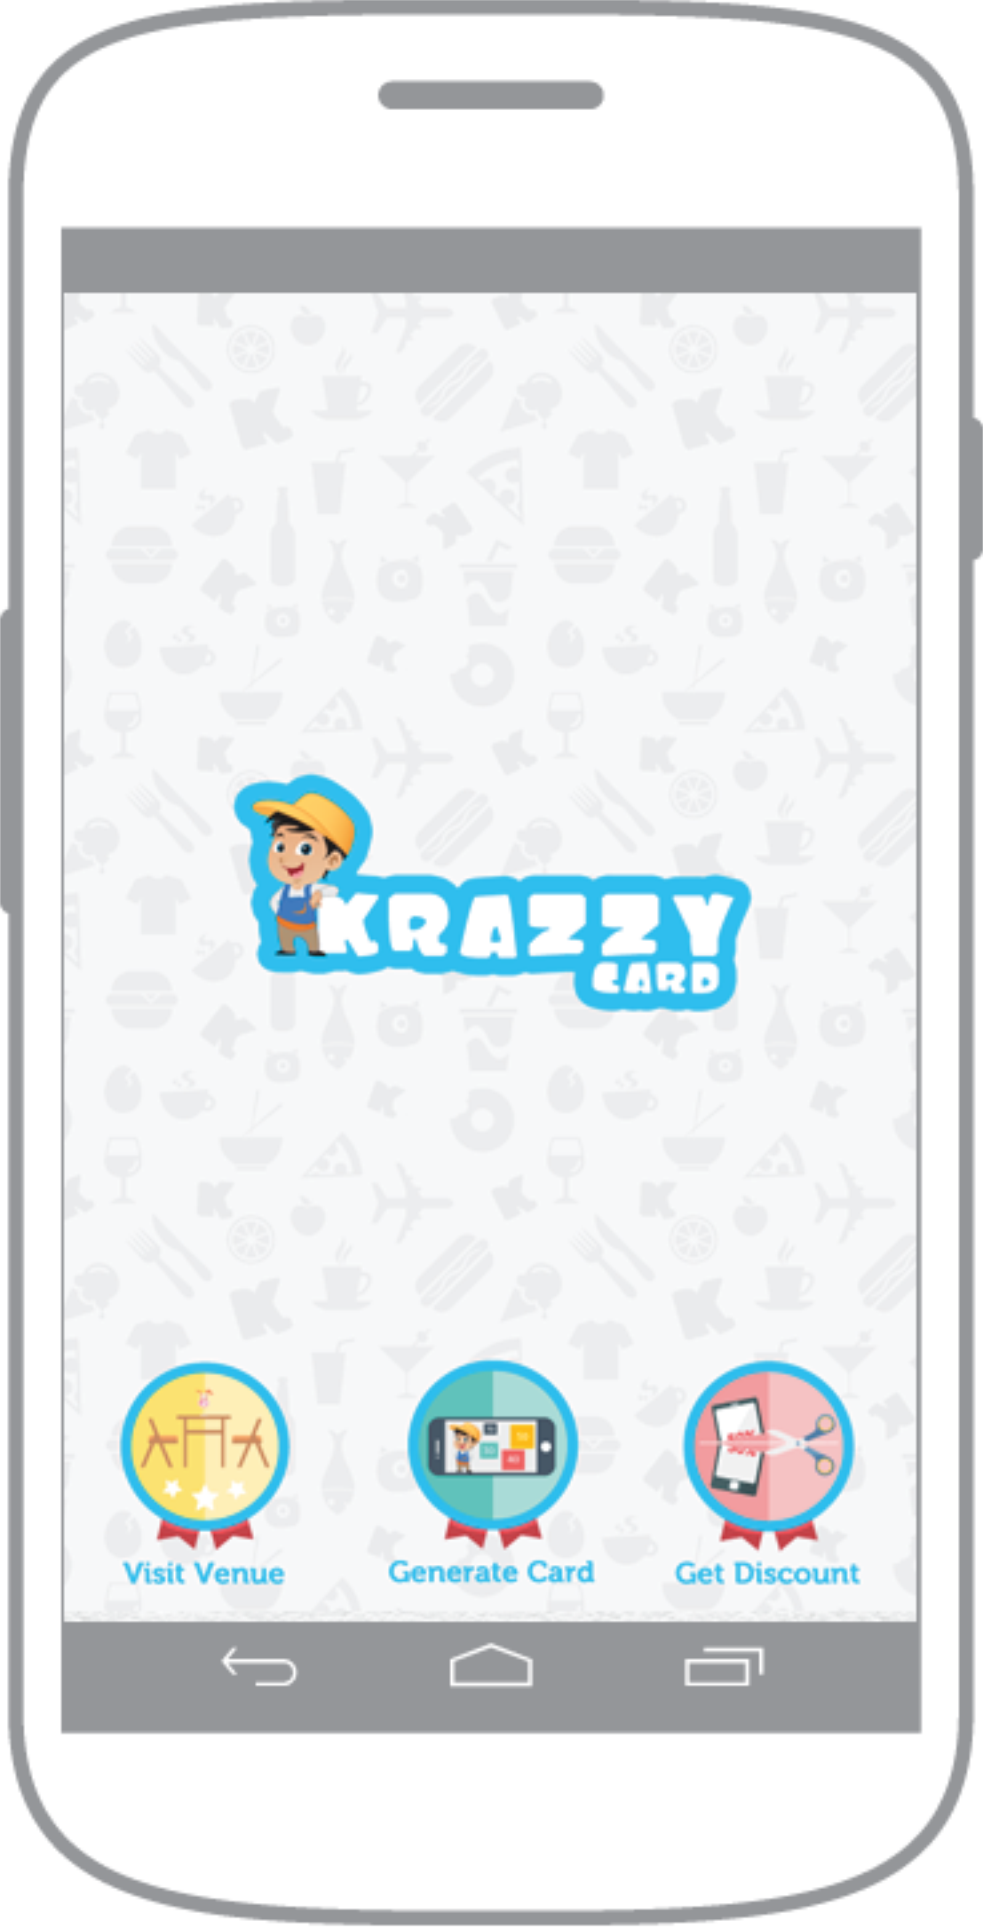 Krazzy Card UI1.png